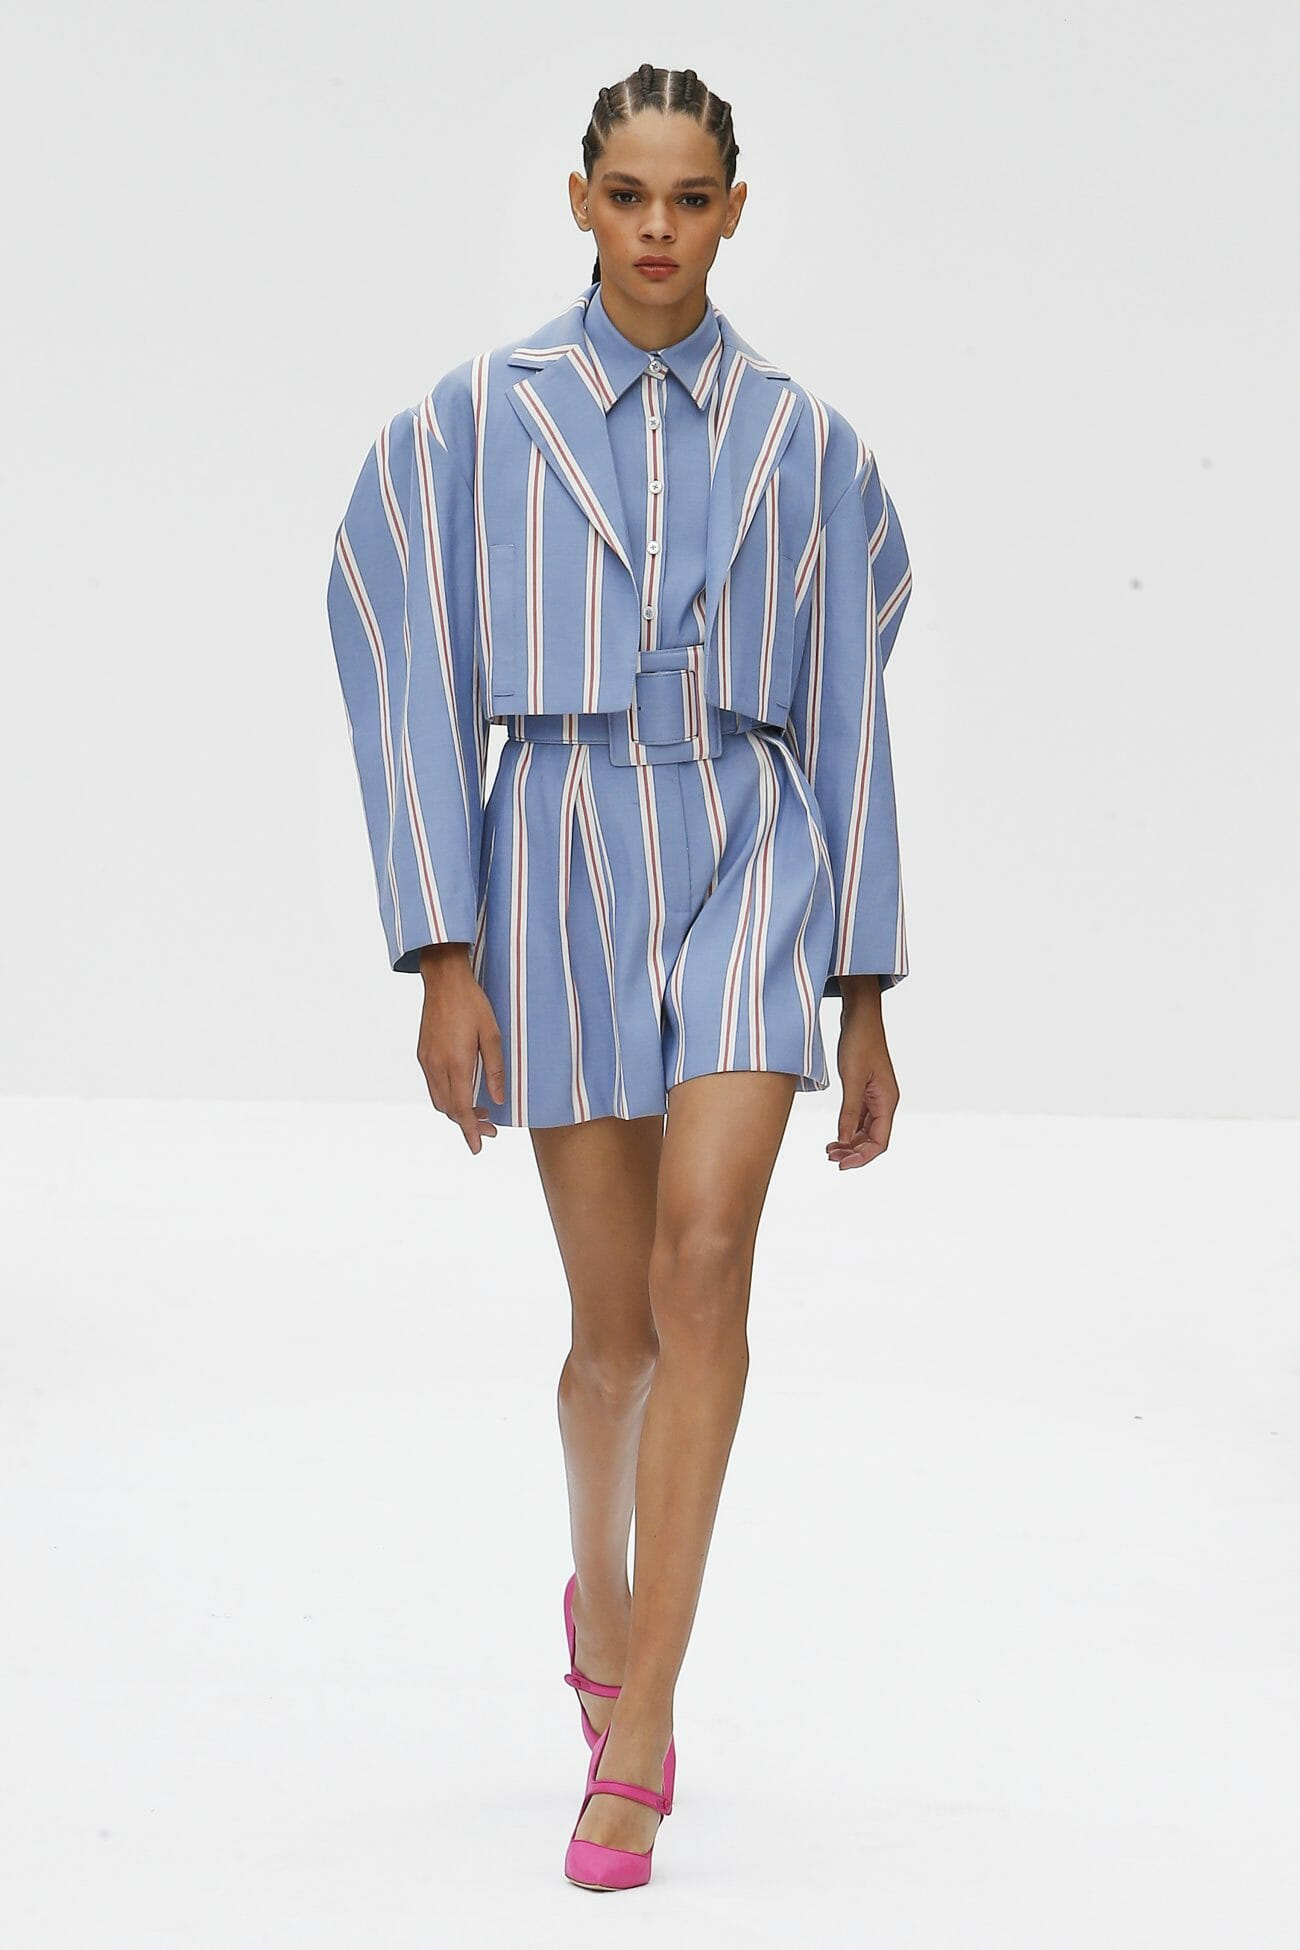 Carolina Herrera New York blue stripes dress